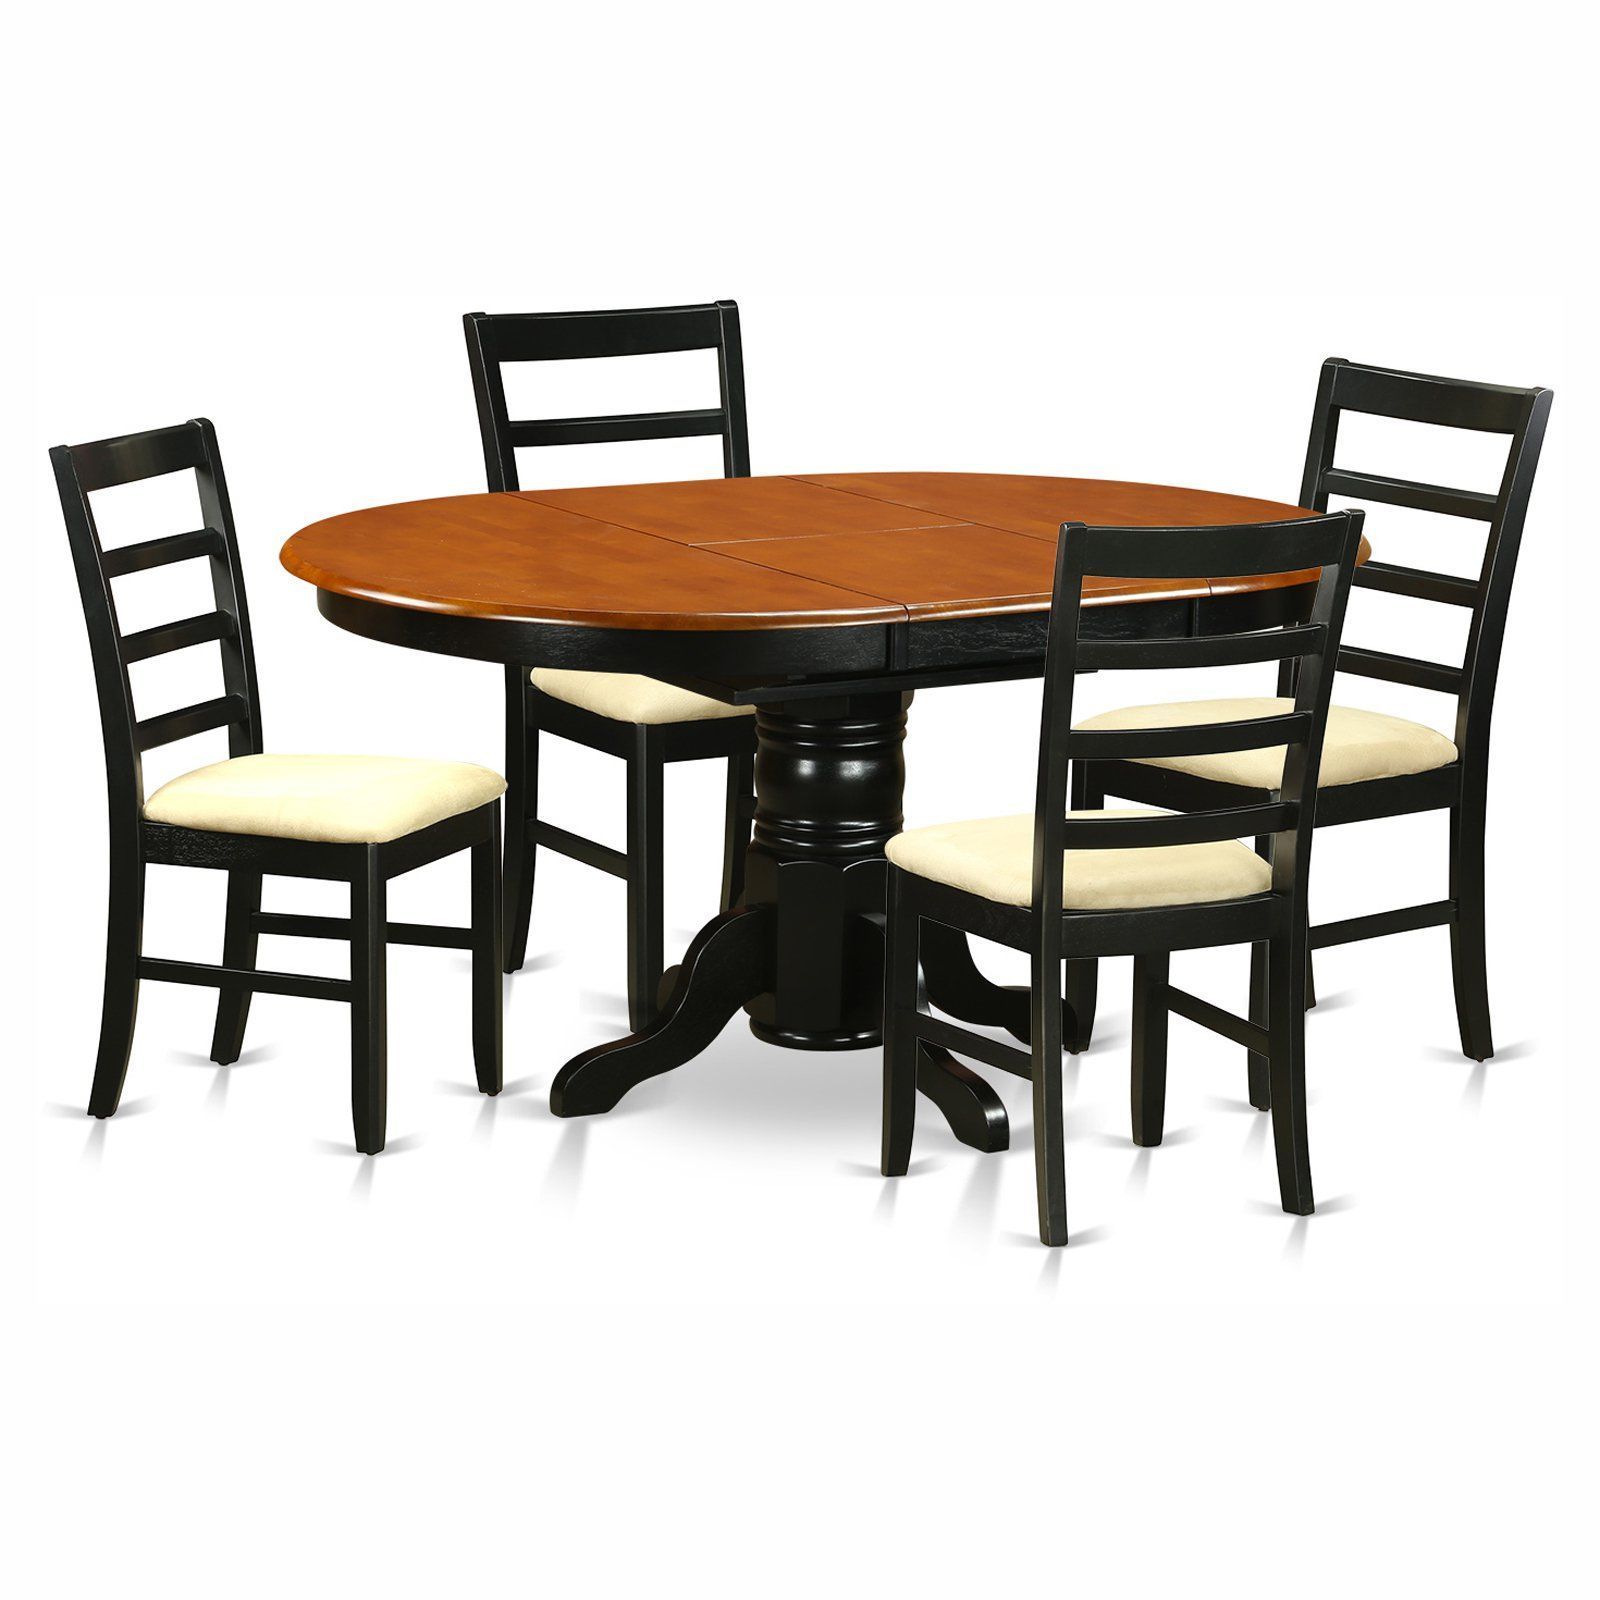 East West Furniture Avon 5 Piece Pedestal Oval Dining Table Set Gorgeous Oval Dining Room Table Set Design Ideas